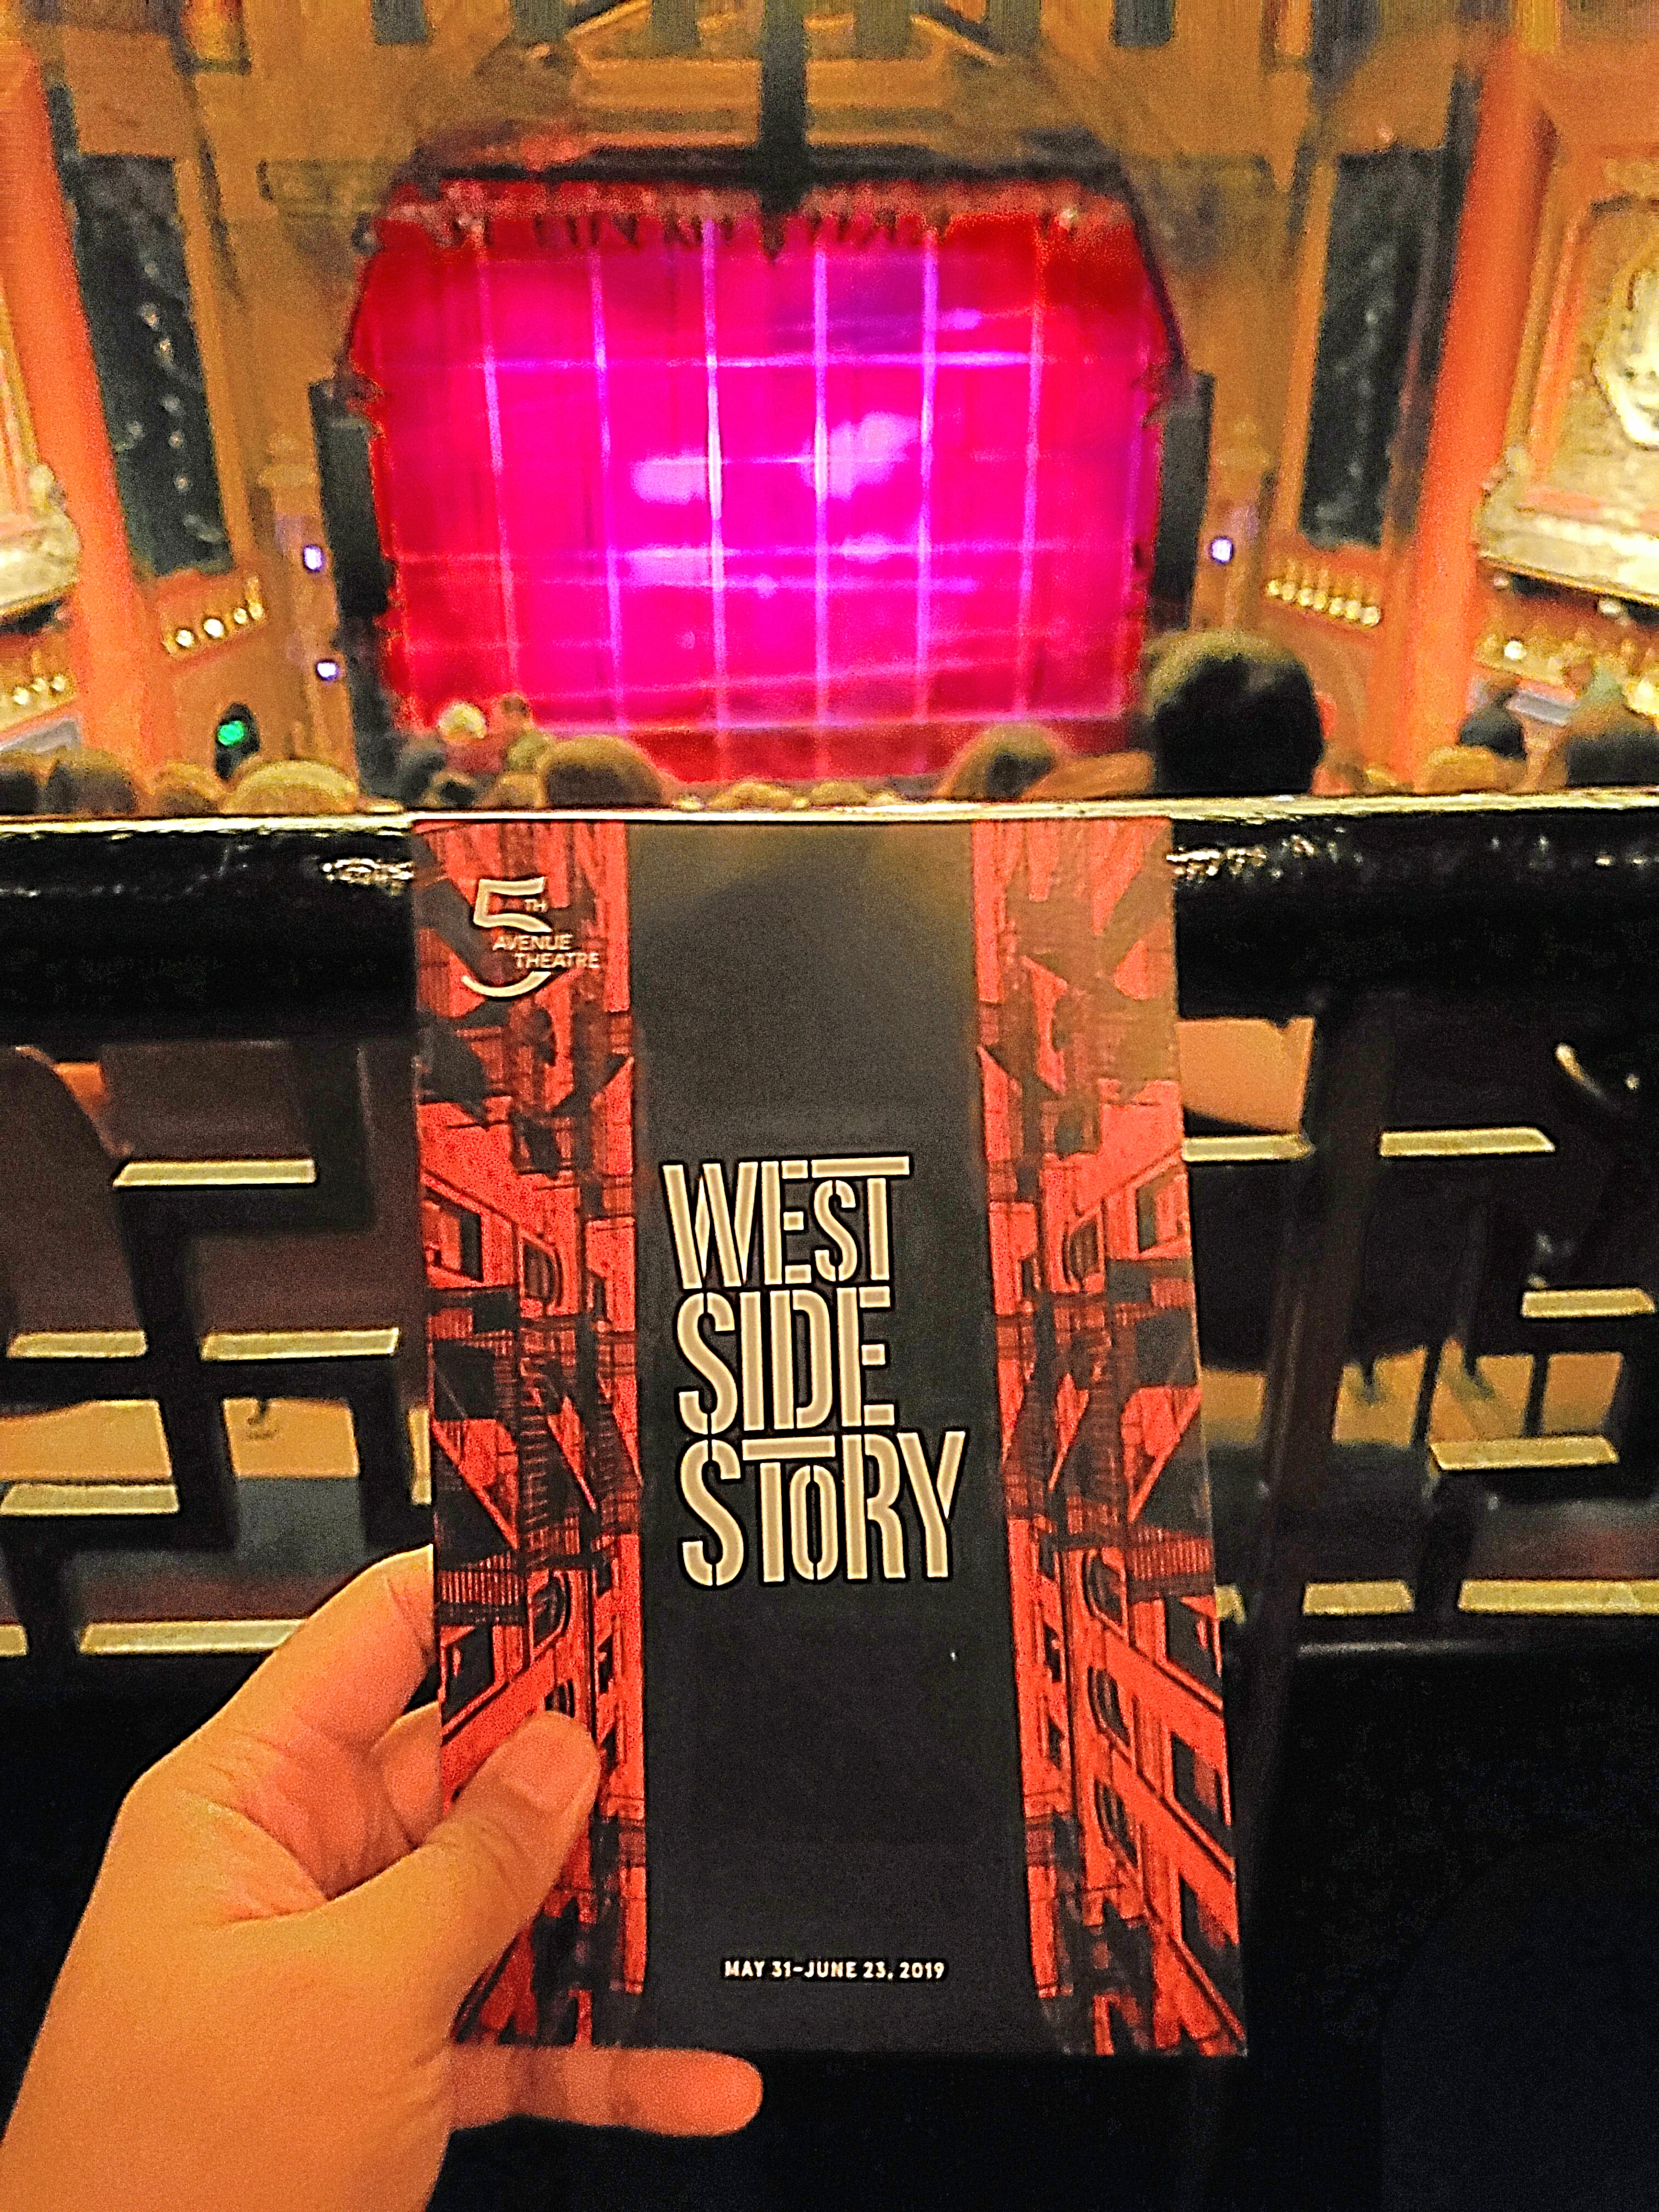 West Side Story #musical w/ Raymund at The 5th Avenue Theatre. Rich male lead voice. #Iconic songs. Beautiful orchestration. Strong #choreography but comical for tough #gangs to